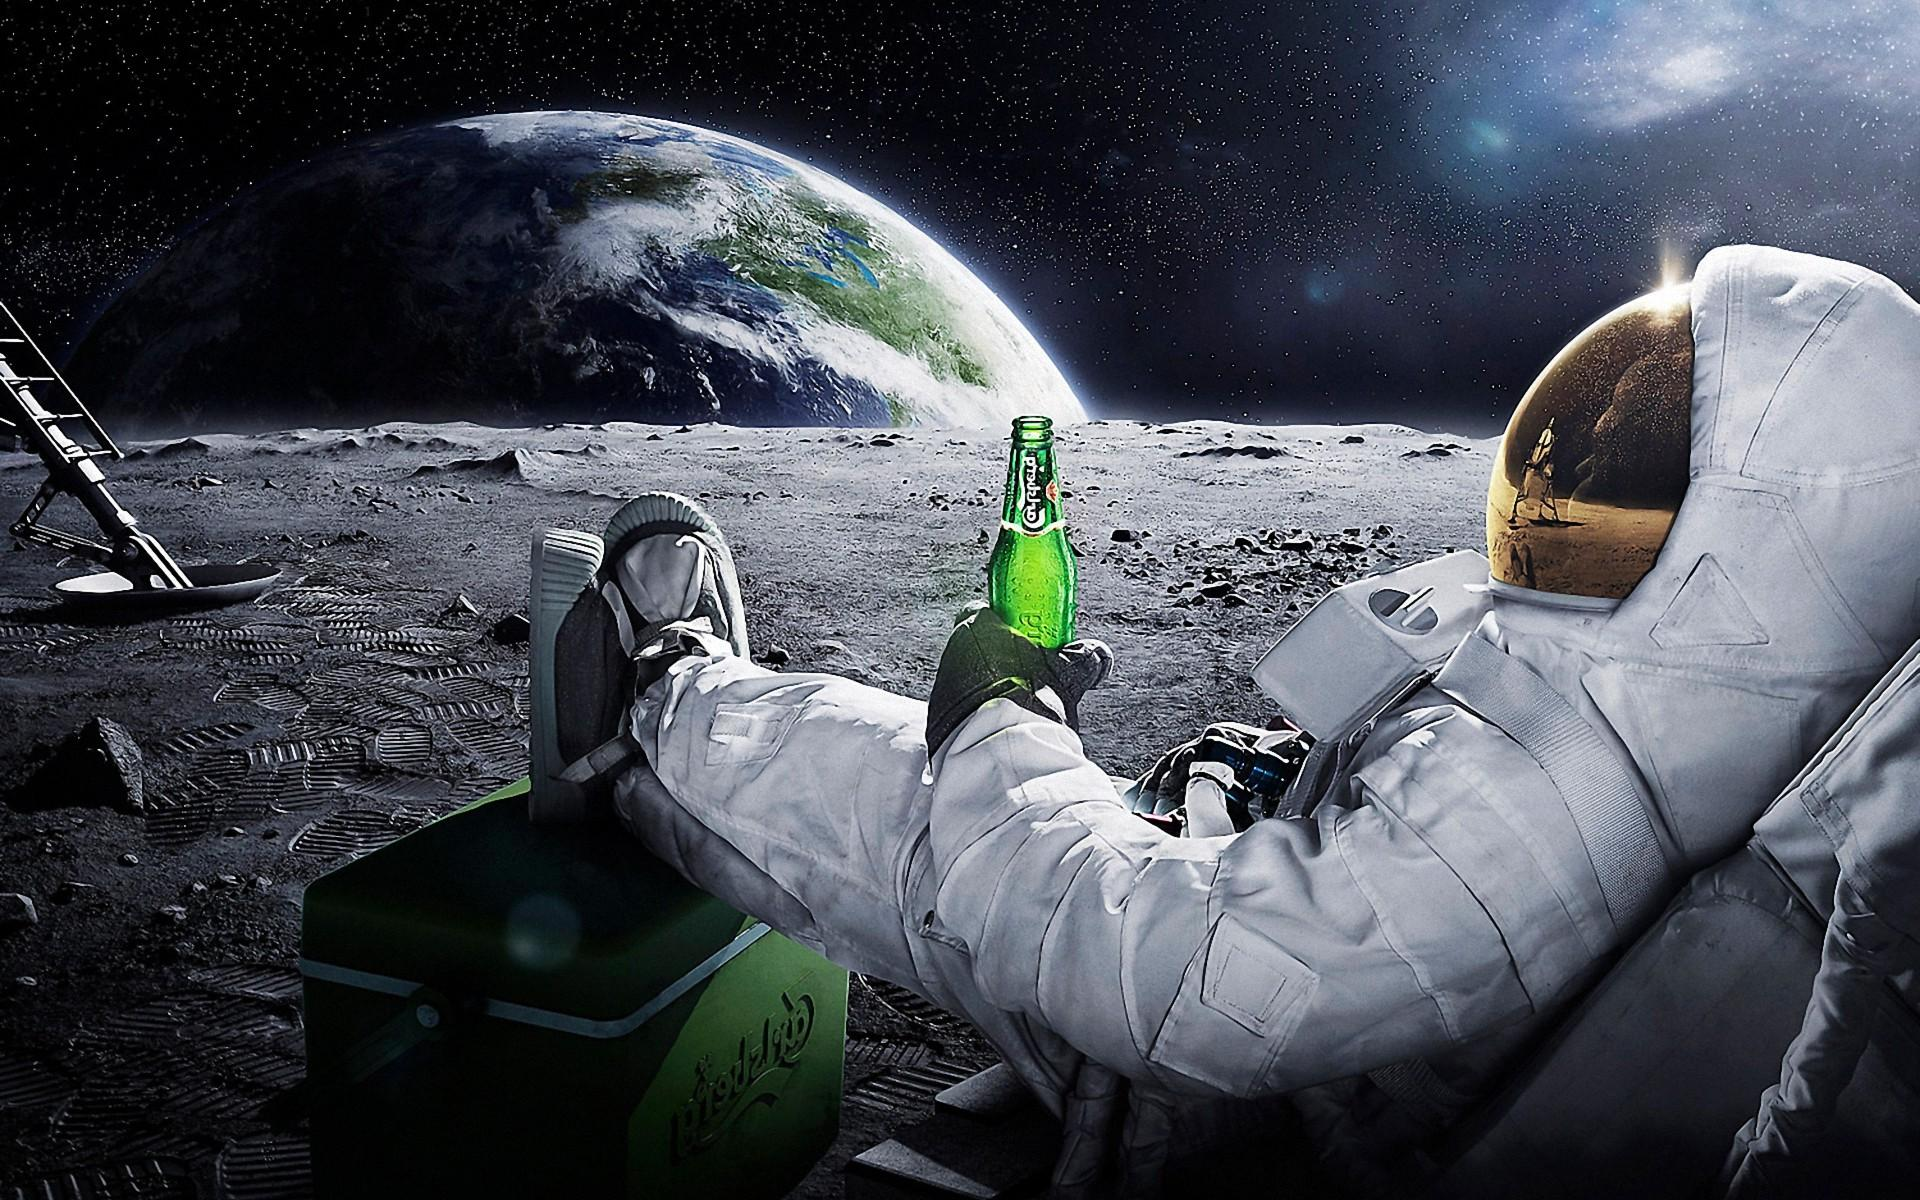 astronaut drinking miller lite beer on the moon - photo #1